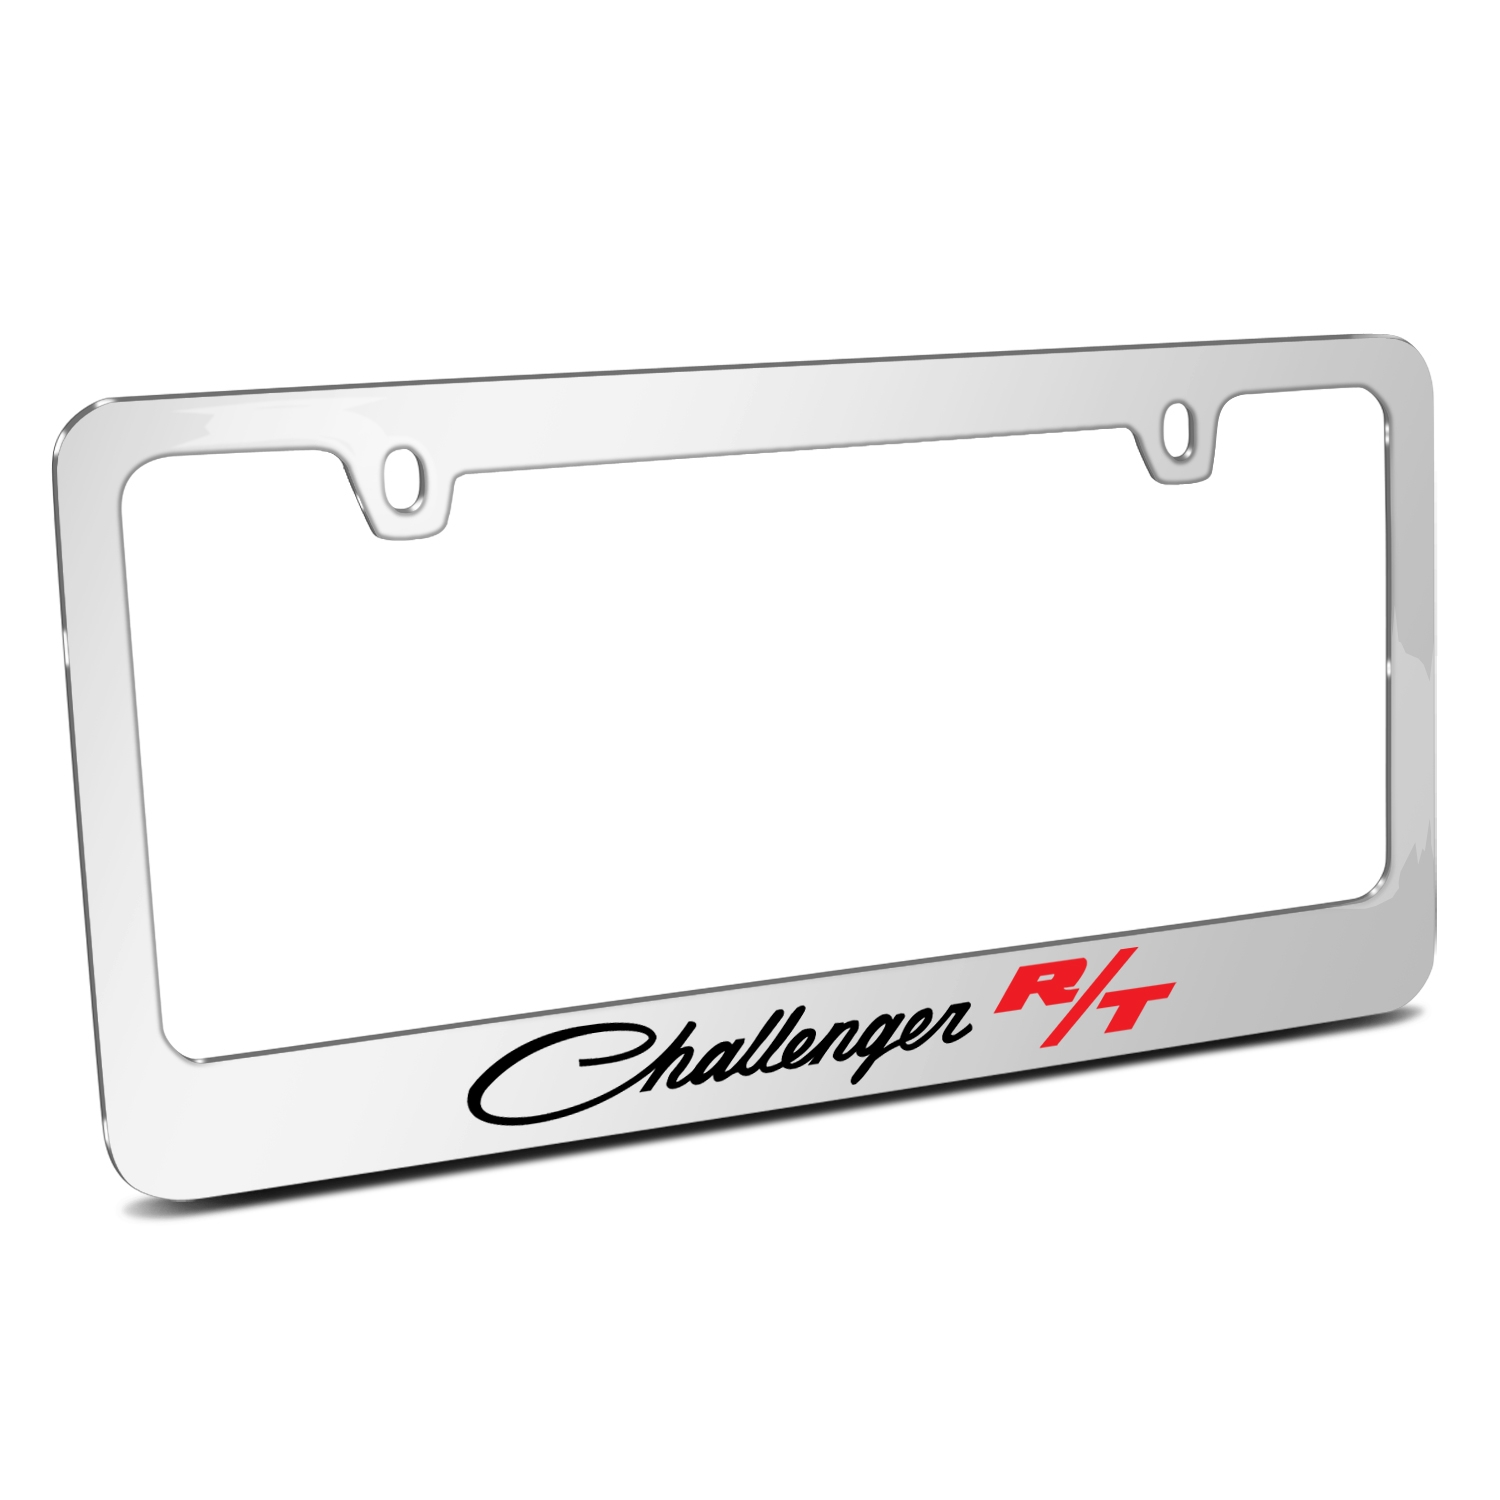 Dodge Challenger R/T Classic Mirror Chrome Metal License Plate Frame